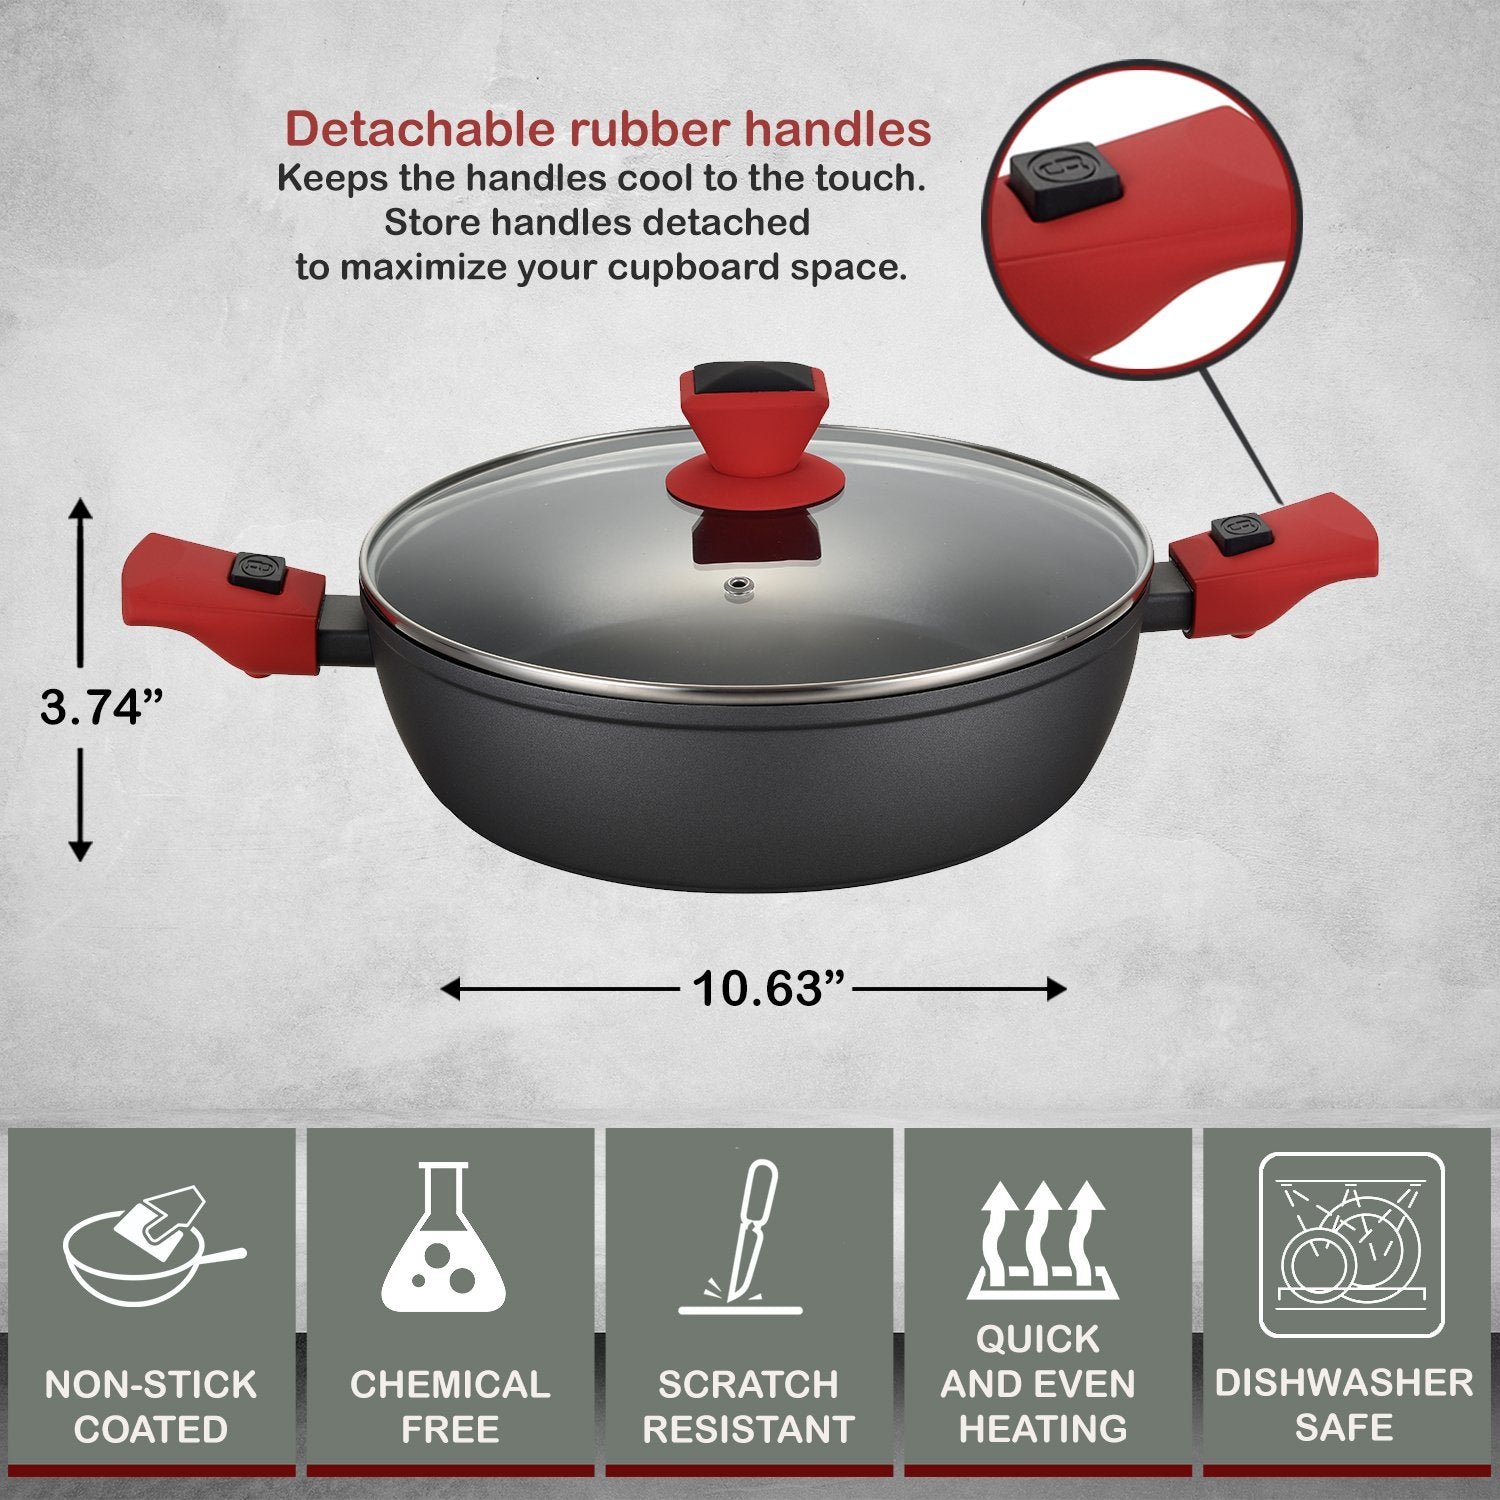 Greblon C2+ Non-Stick Coated Forged Aluminum Round 4.5 L Low Casserole Pan & Glass Lid with Detachable Handle - 10 Inch